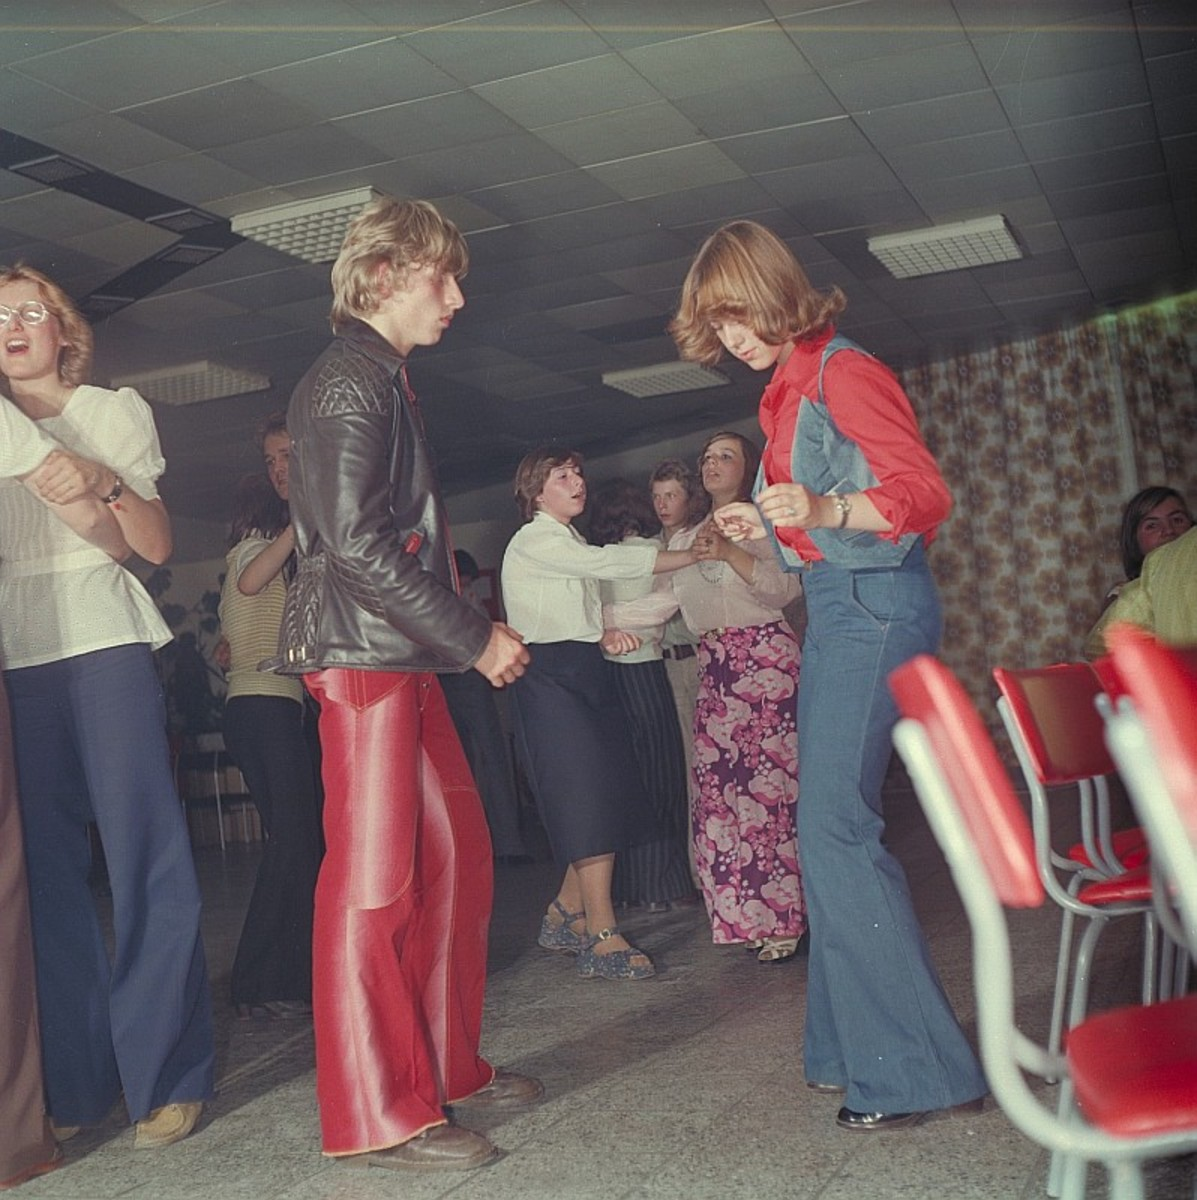 Look at old photos of your family (or yourself) from the 70s and get inspired!